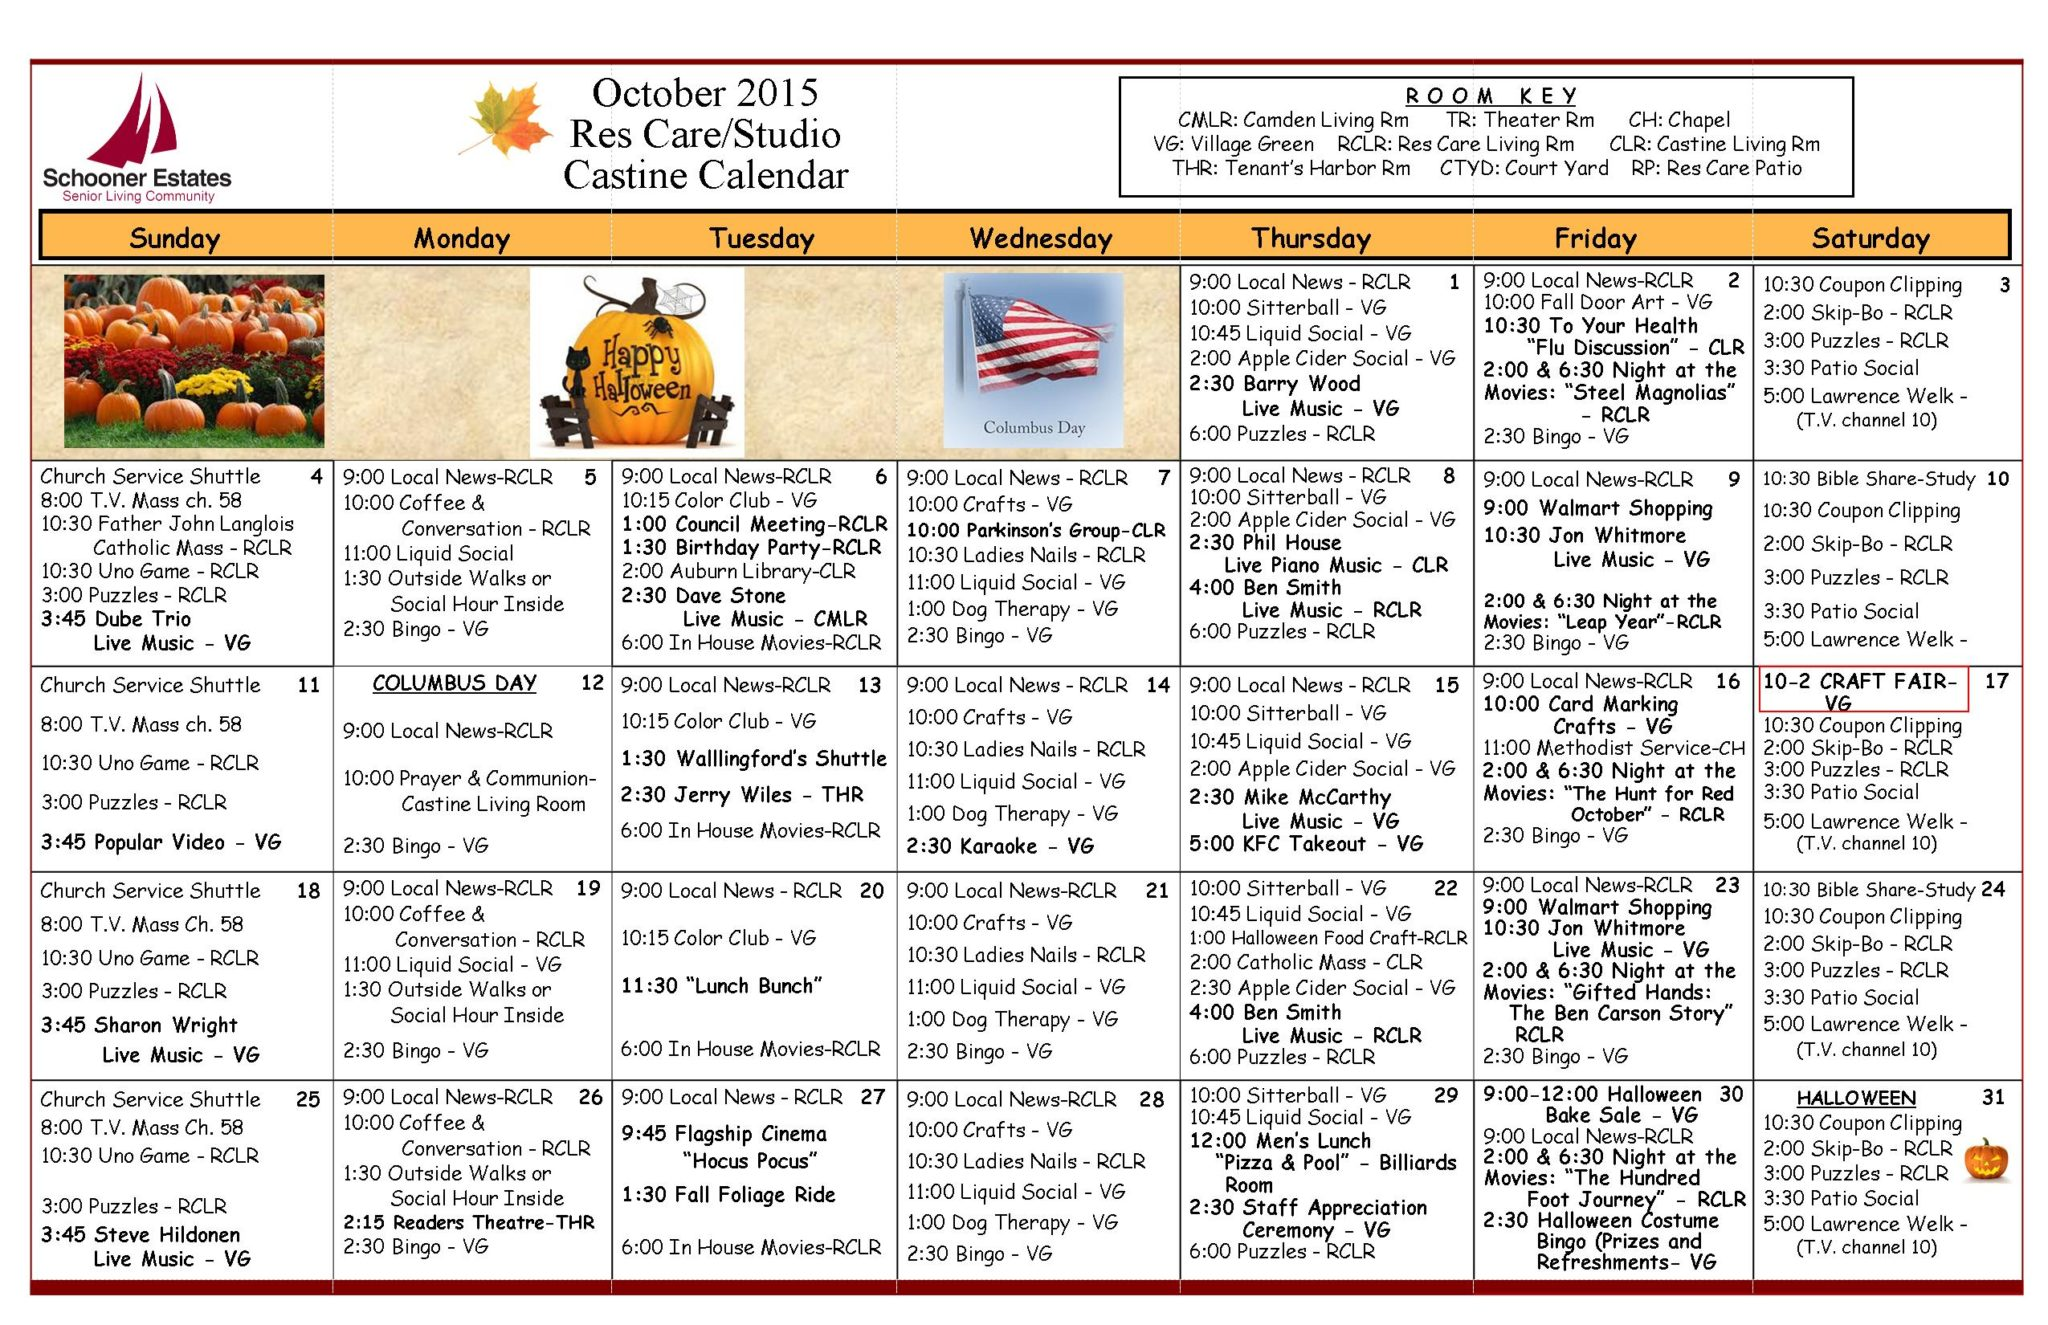 October 2015 Assisted Living and Residential Care Activity Calendar